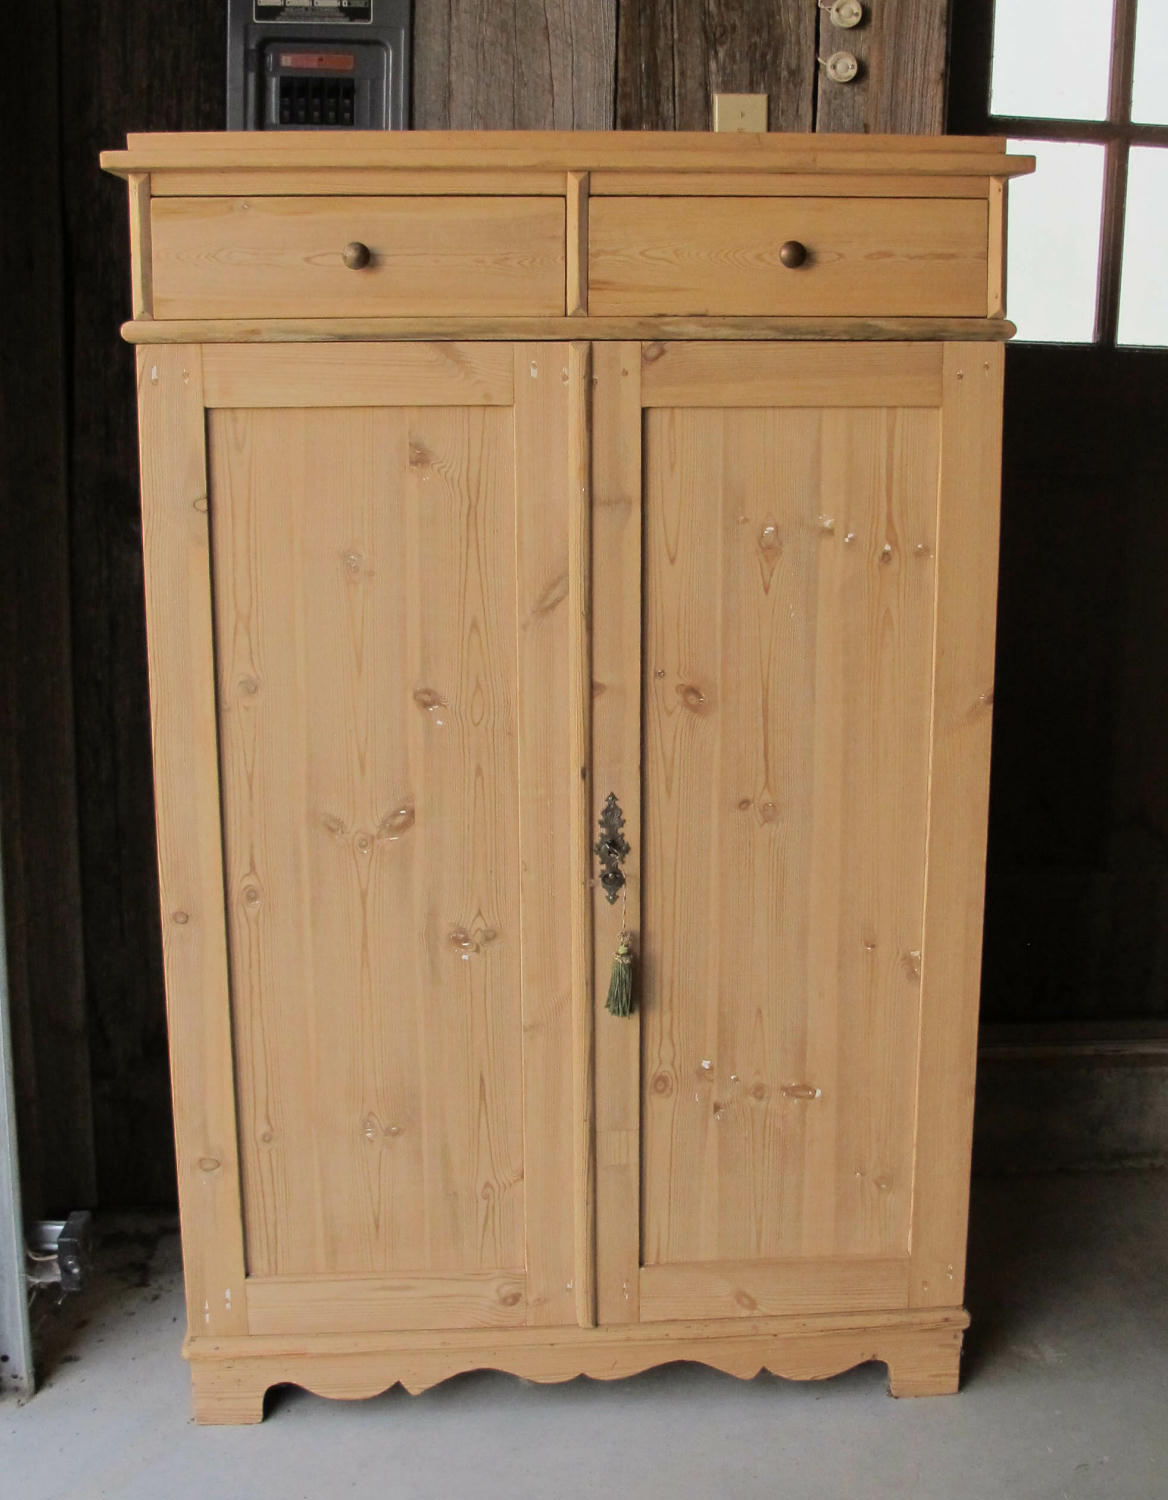 decor tall shaker p jelly storage and pine with amish chimney furniture primitive pie cupboard safes room perfect any for antique cupboards cooler cabinet